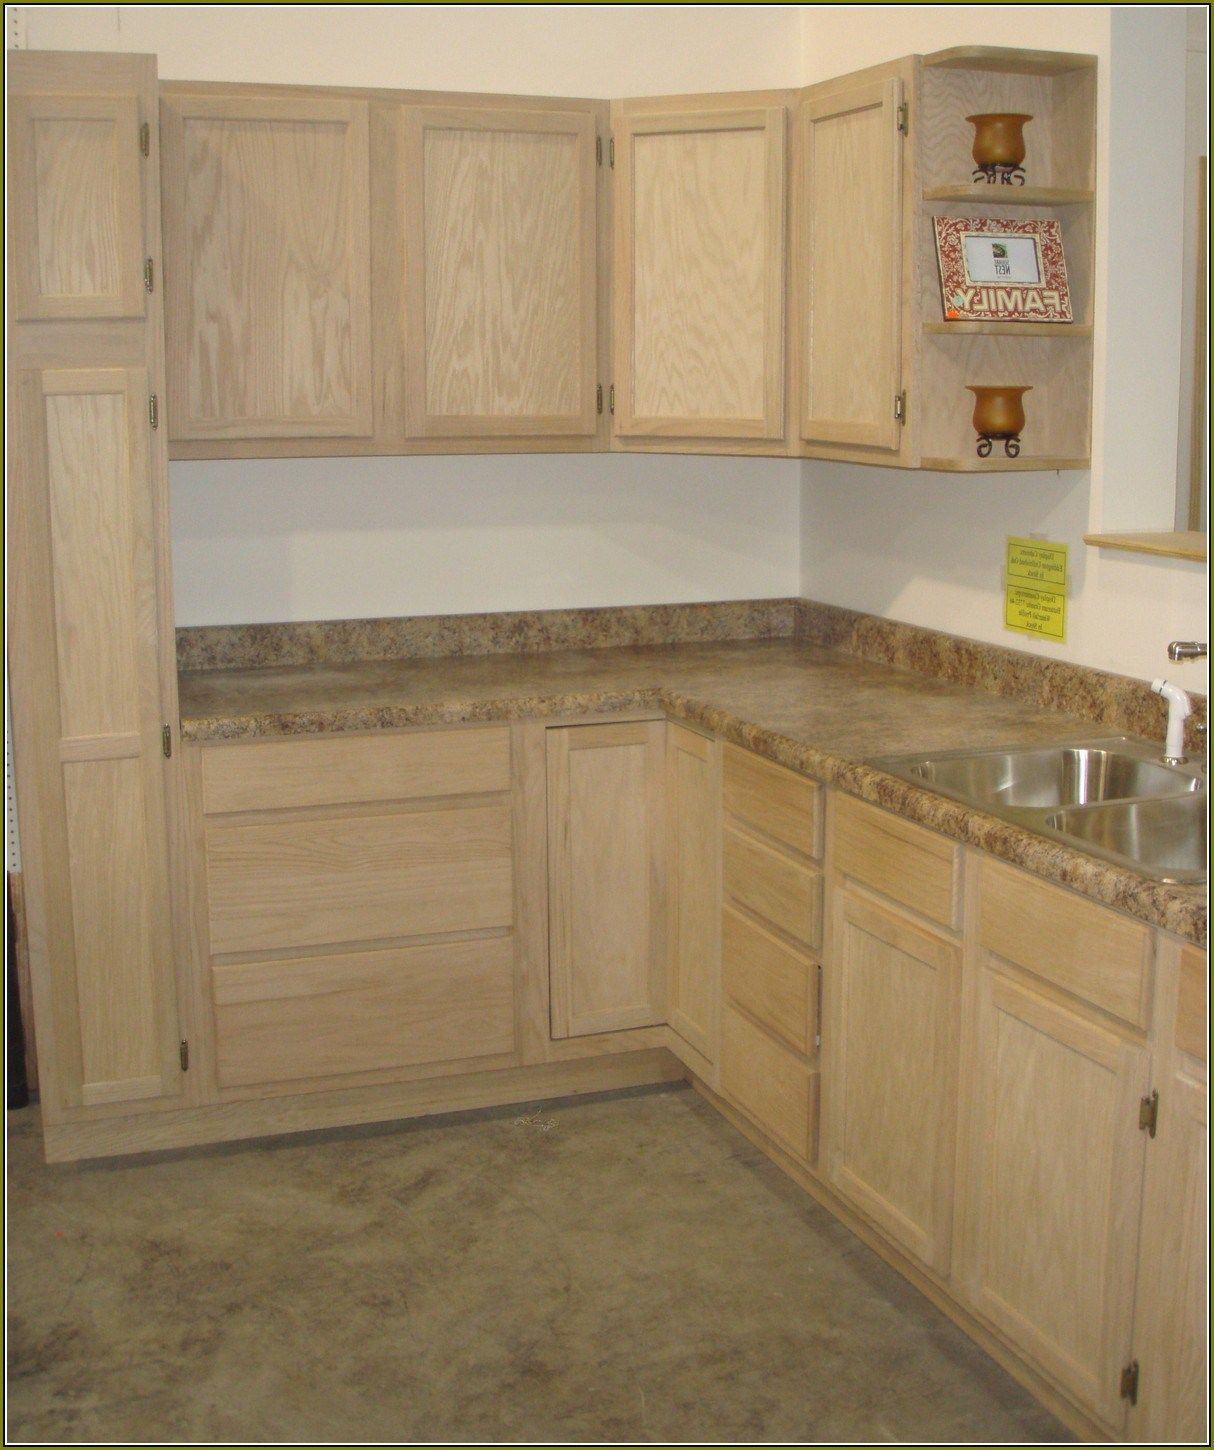 Delicieux Home Improvements Refference Unfinished Pine Cabinets Home Depot Kitchen  Cabinets Assemble Home Depot Lowes Kitchen Cabinets